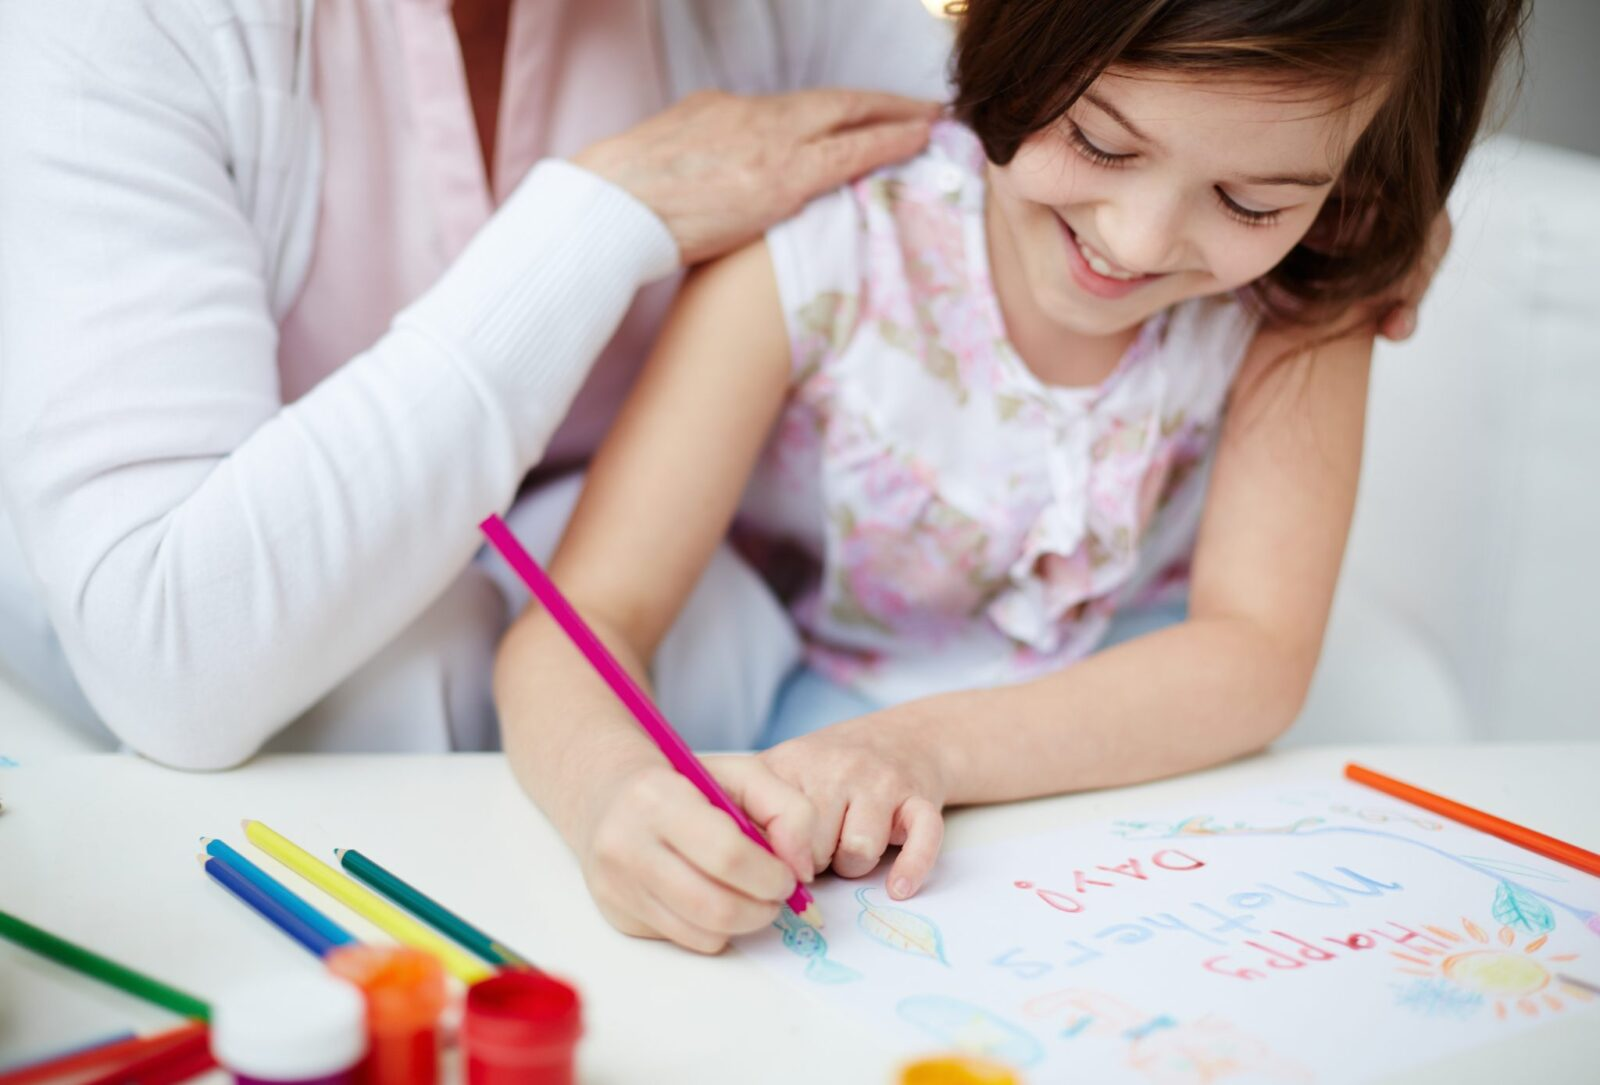 There are so many special and fun ways to celebrate Mother's Day in the classroom. This post is filled with 10+ ideas and activities for kids to recognize mom and grandparents. Make a simple, hand-made gift, such as a card, craft, or directed drawing portrait or have a special event and invite mom.